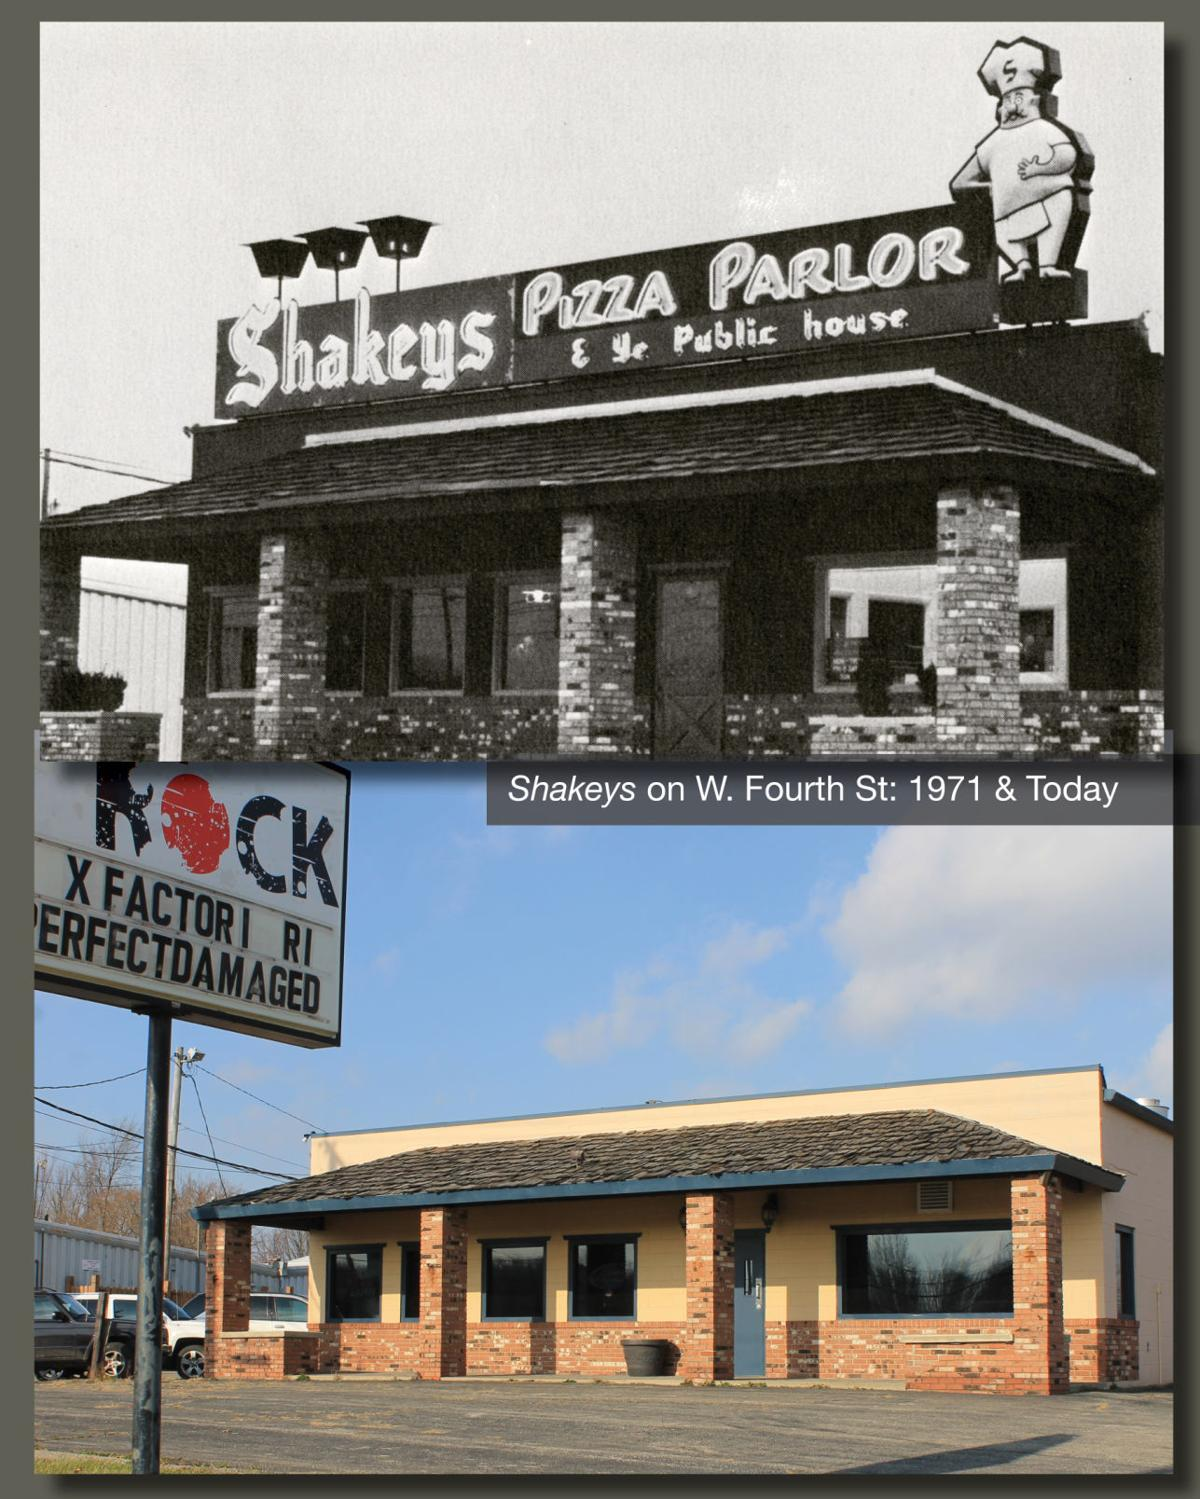 history of shakeys Examples of pre-history (before 1980) high technology attacks  but it was an interesting look at the history of  examples of pre-history (before.